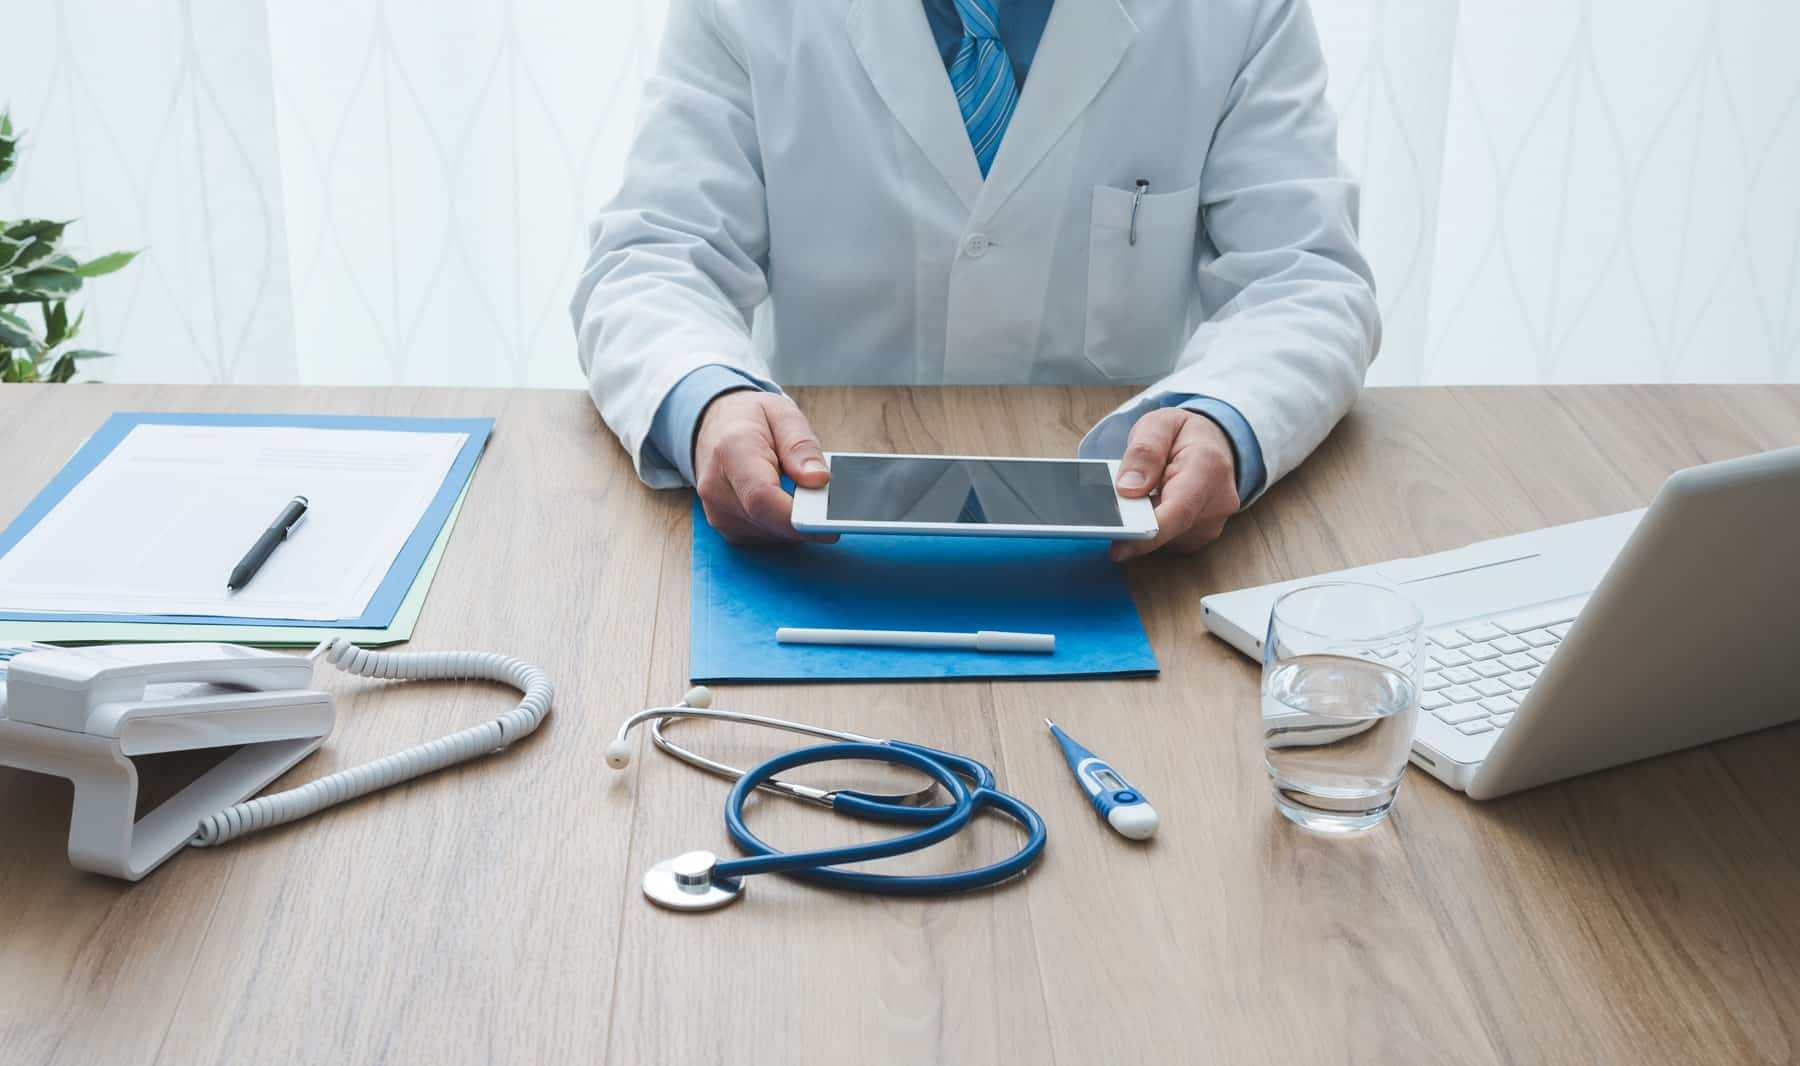 Healthcare and technology need to catch up with eachother!